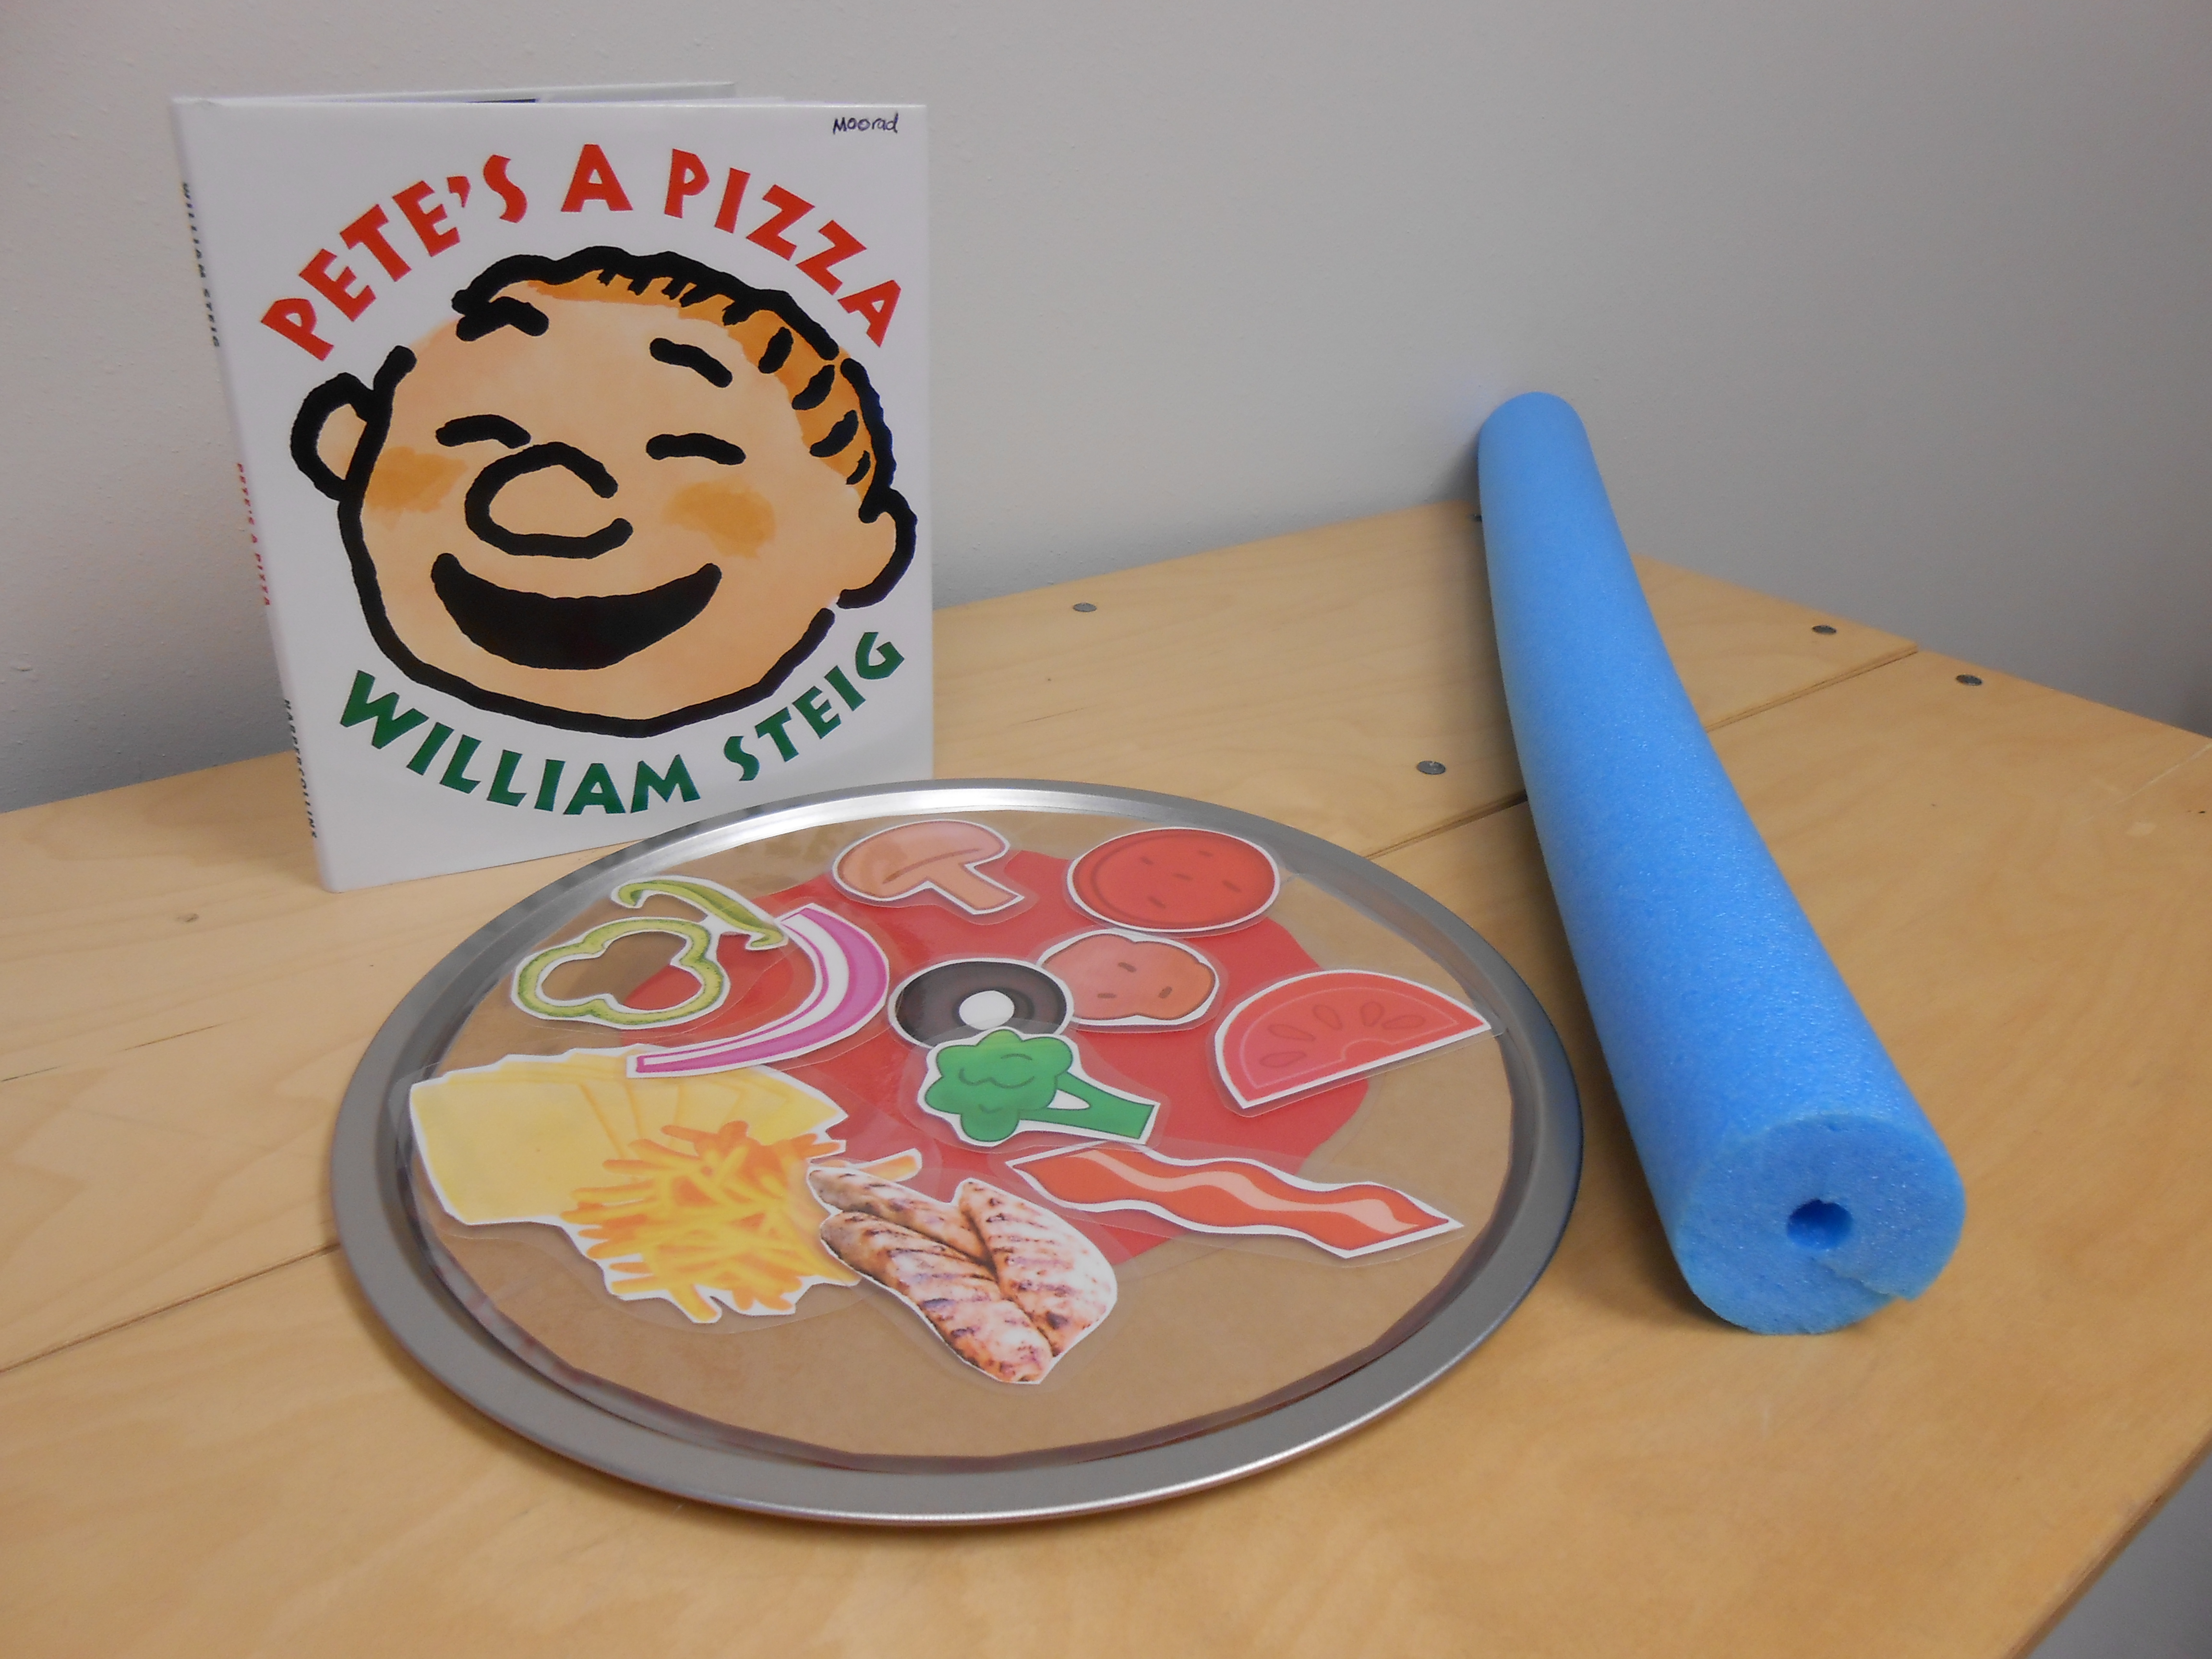 Pete S A Pizza Party An Omazing Kids Yoga Lesson Plan